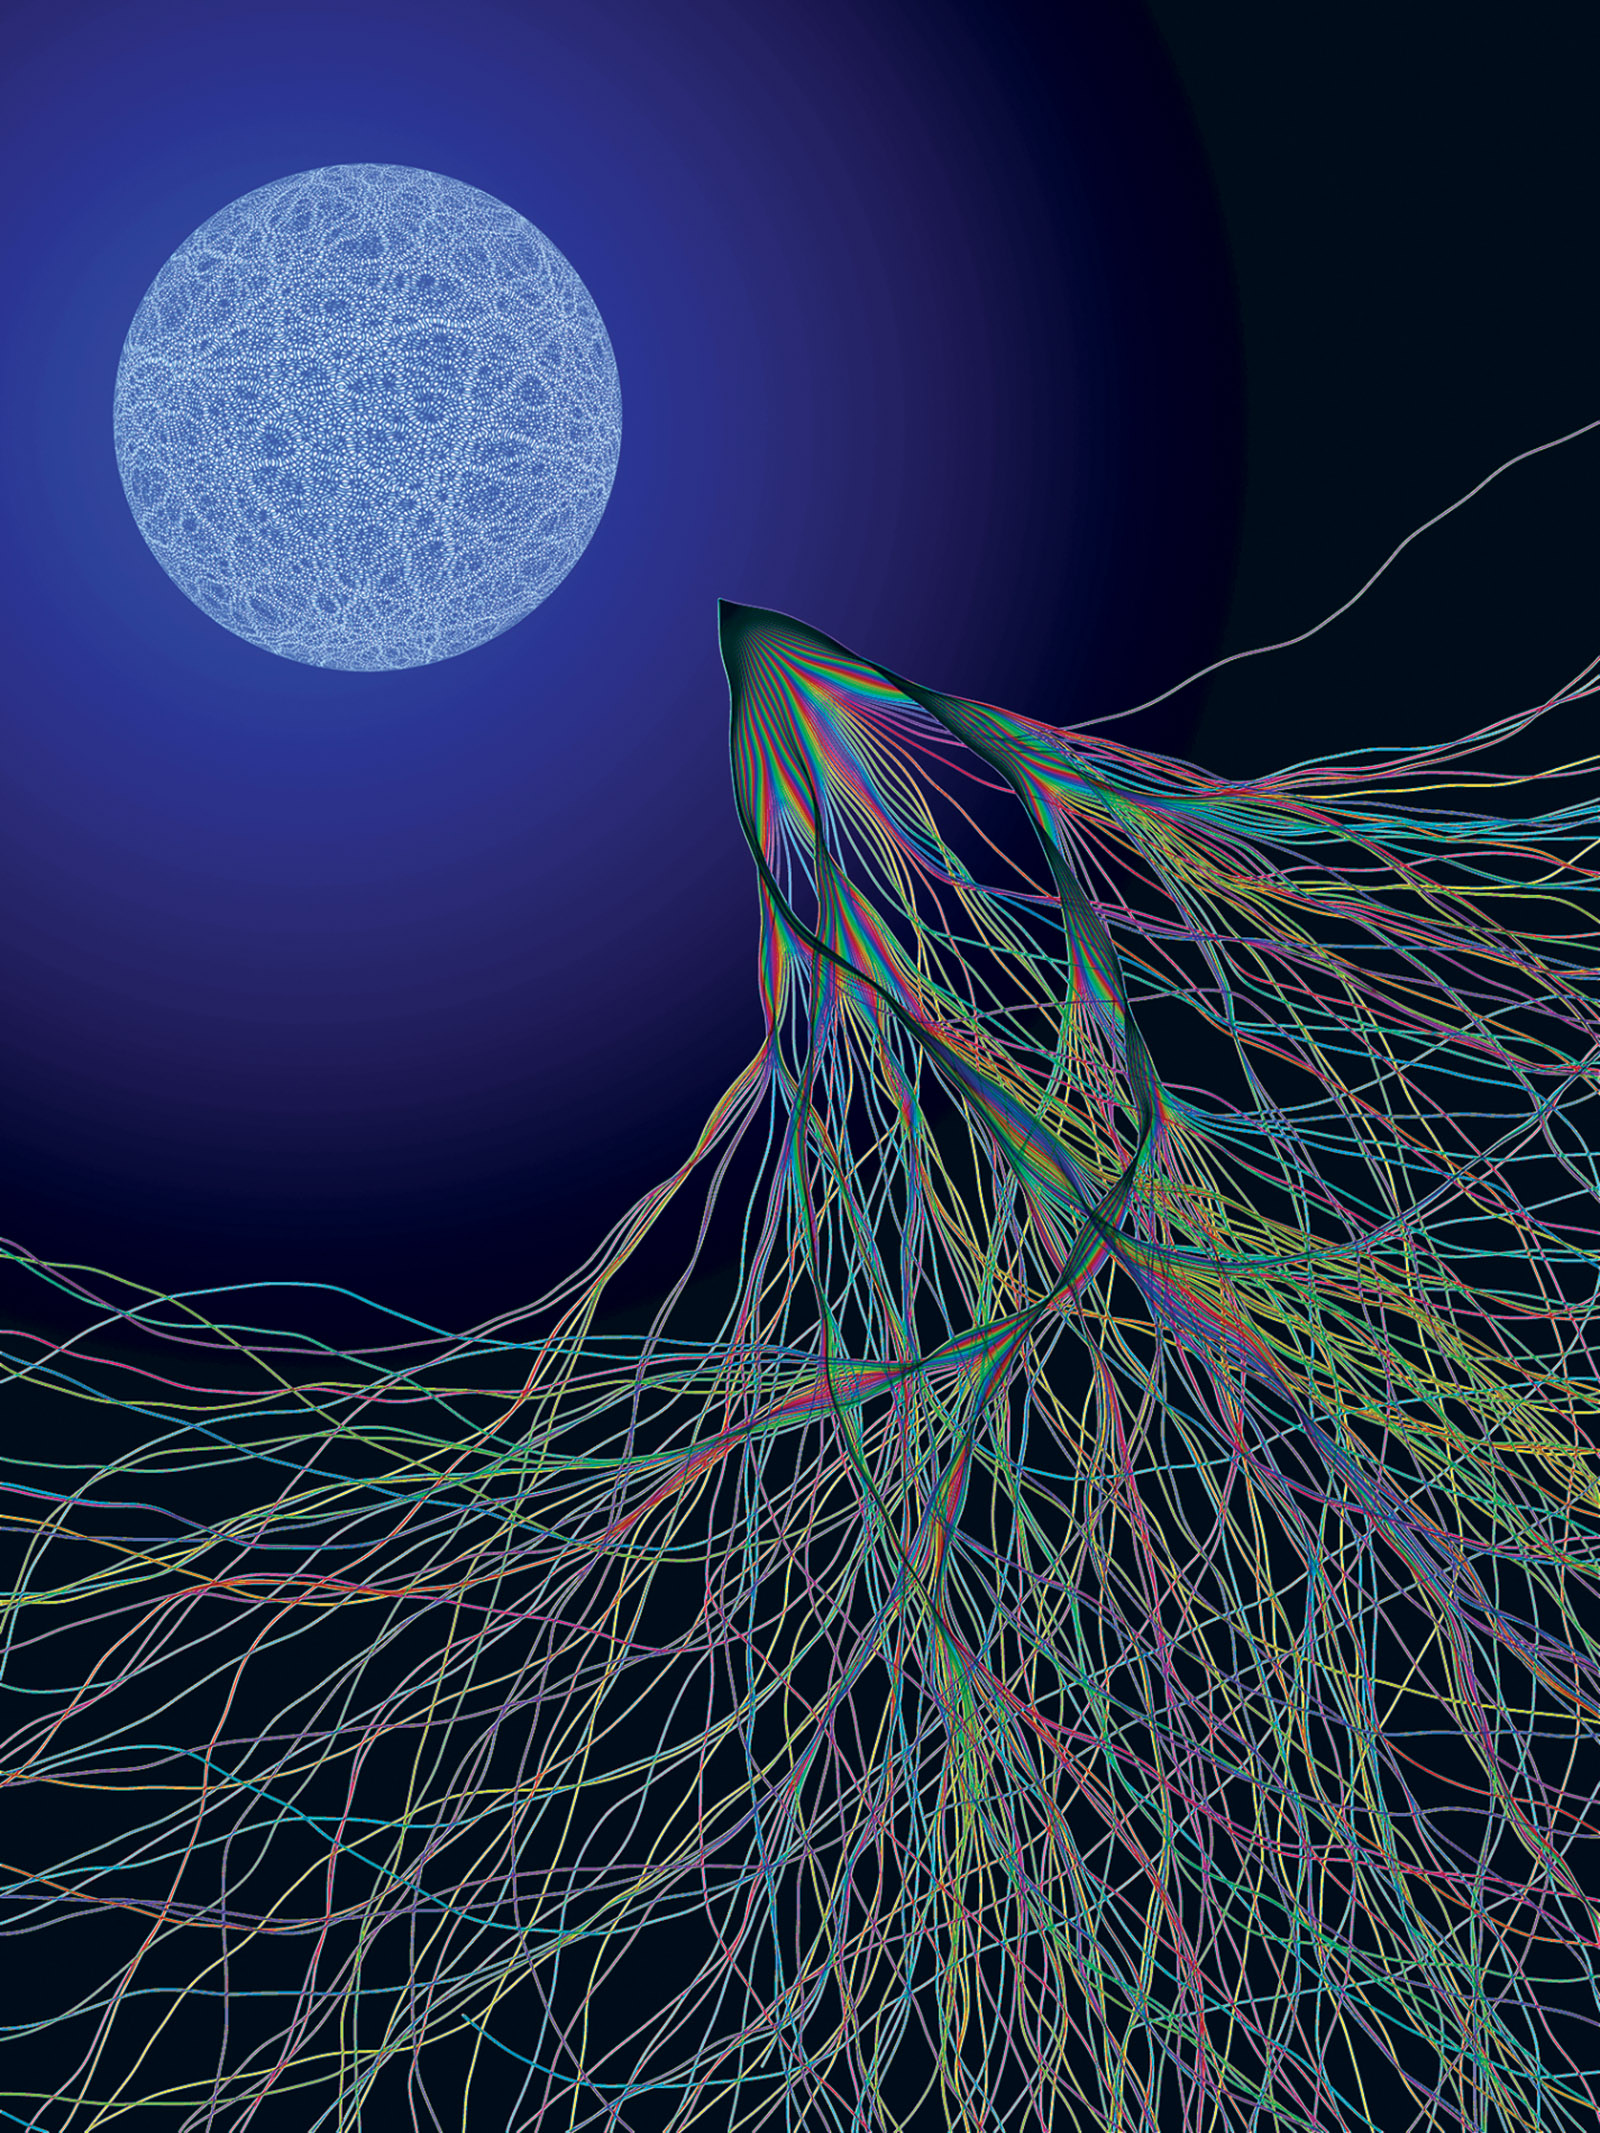 The physicist Eric J. Heller's Transport XIII (2003), inspired by electron flow experiments conducted at Harvard. According to Heller, the image 'shows two kinds of chaos: a random quantum wave on the surface of a sphere, and chaotic classical electron paths in a semiconductor launched over a range of angles from a particular point. Even though one is quantum mechanical and the other classical, they are related: the chaotic classical paths cause random quantum waves to appear when the classical system is solved quantum mechanically.'